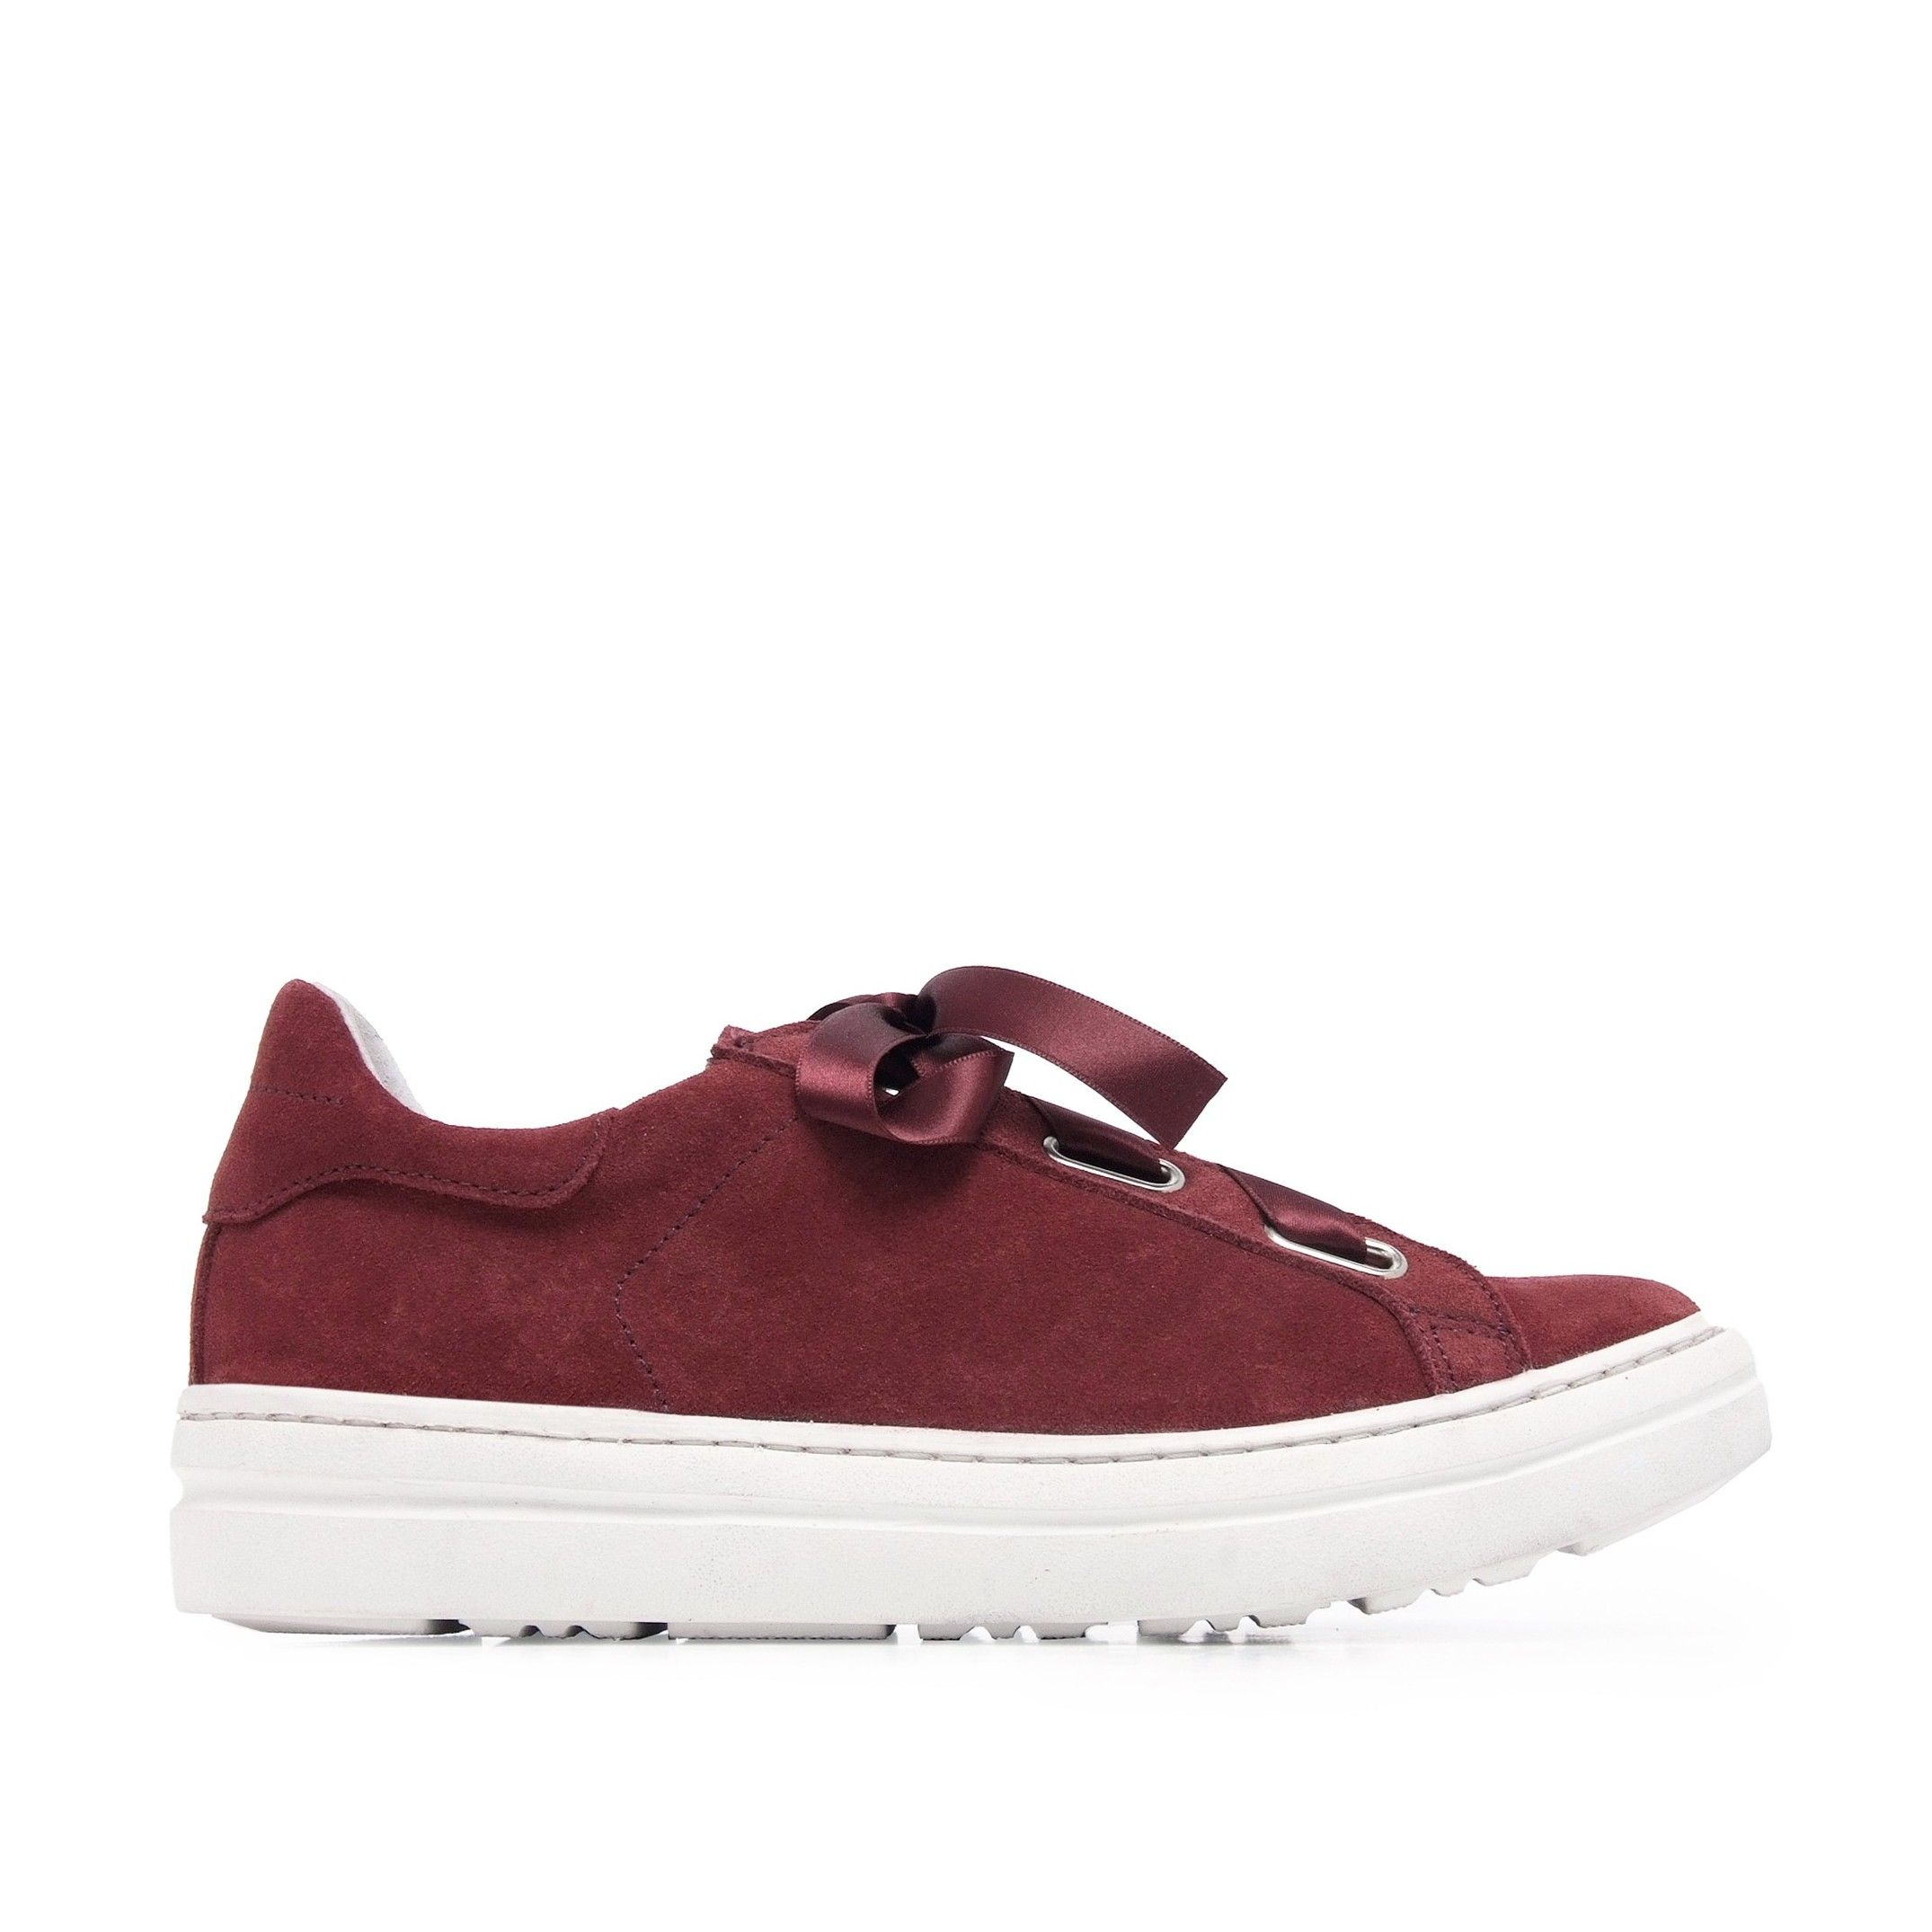 María Barceló Womens Leather Sneakers in Garnet